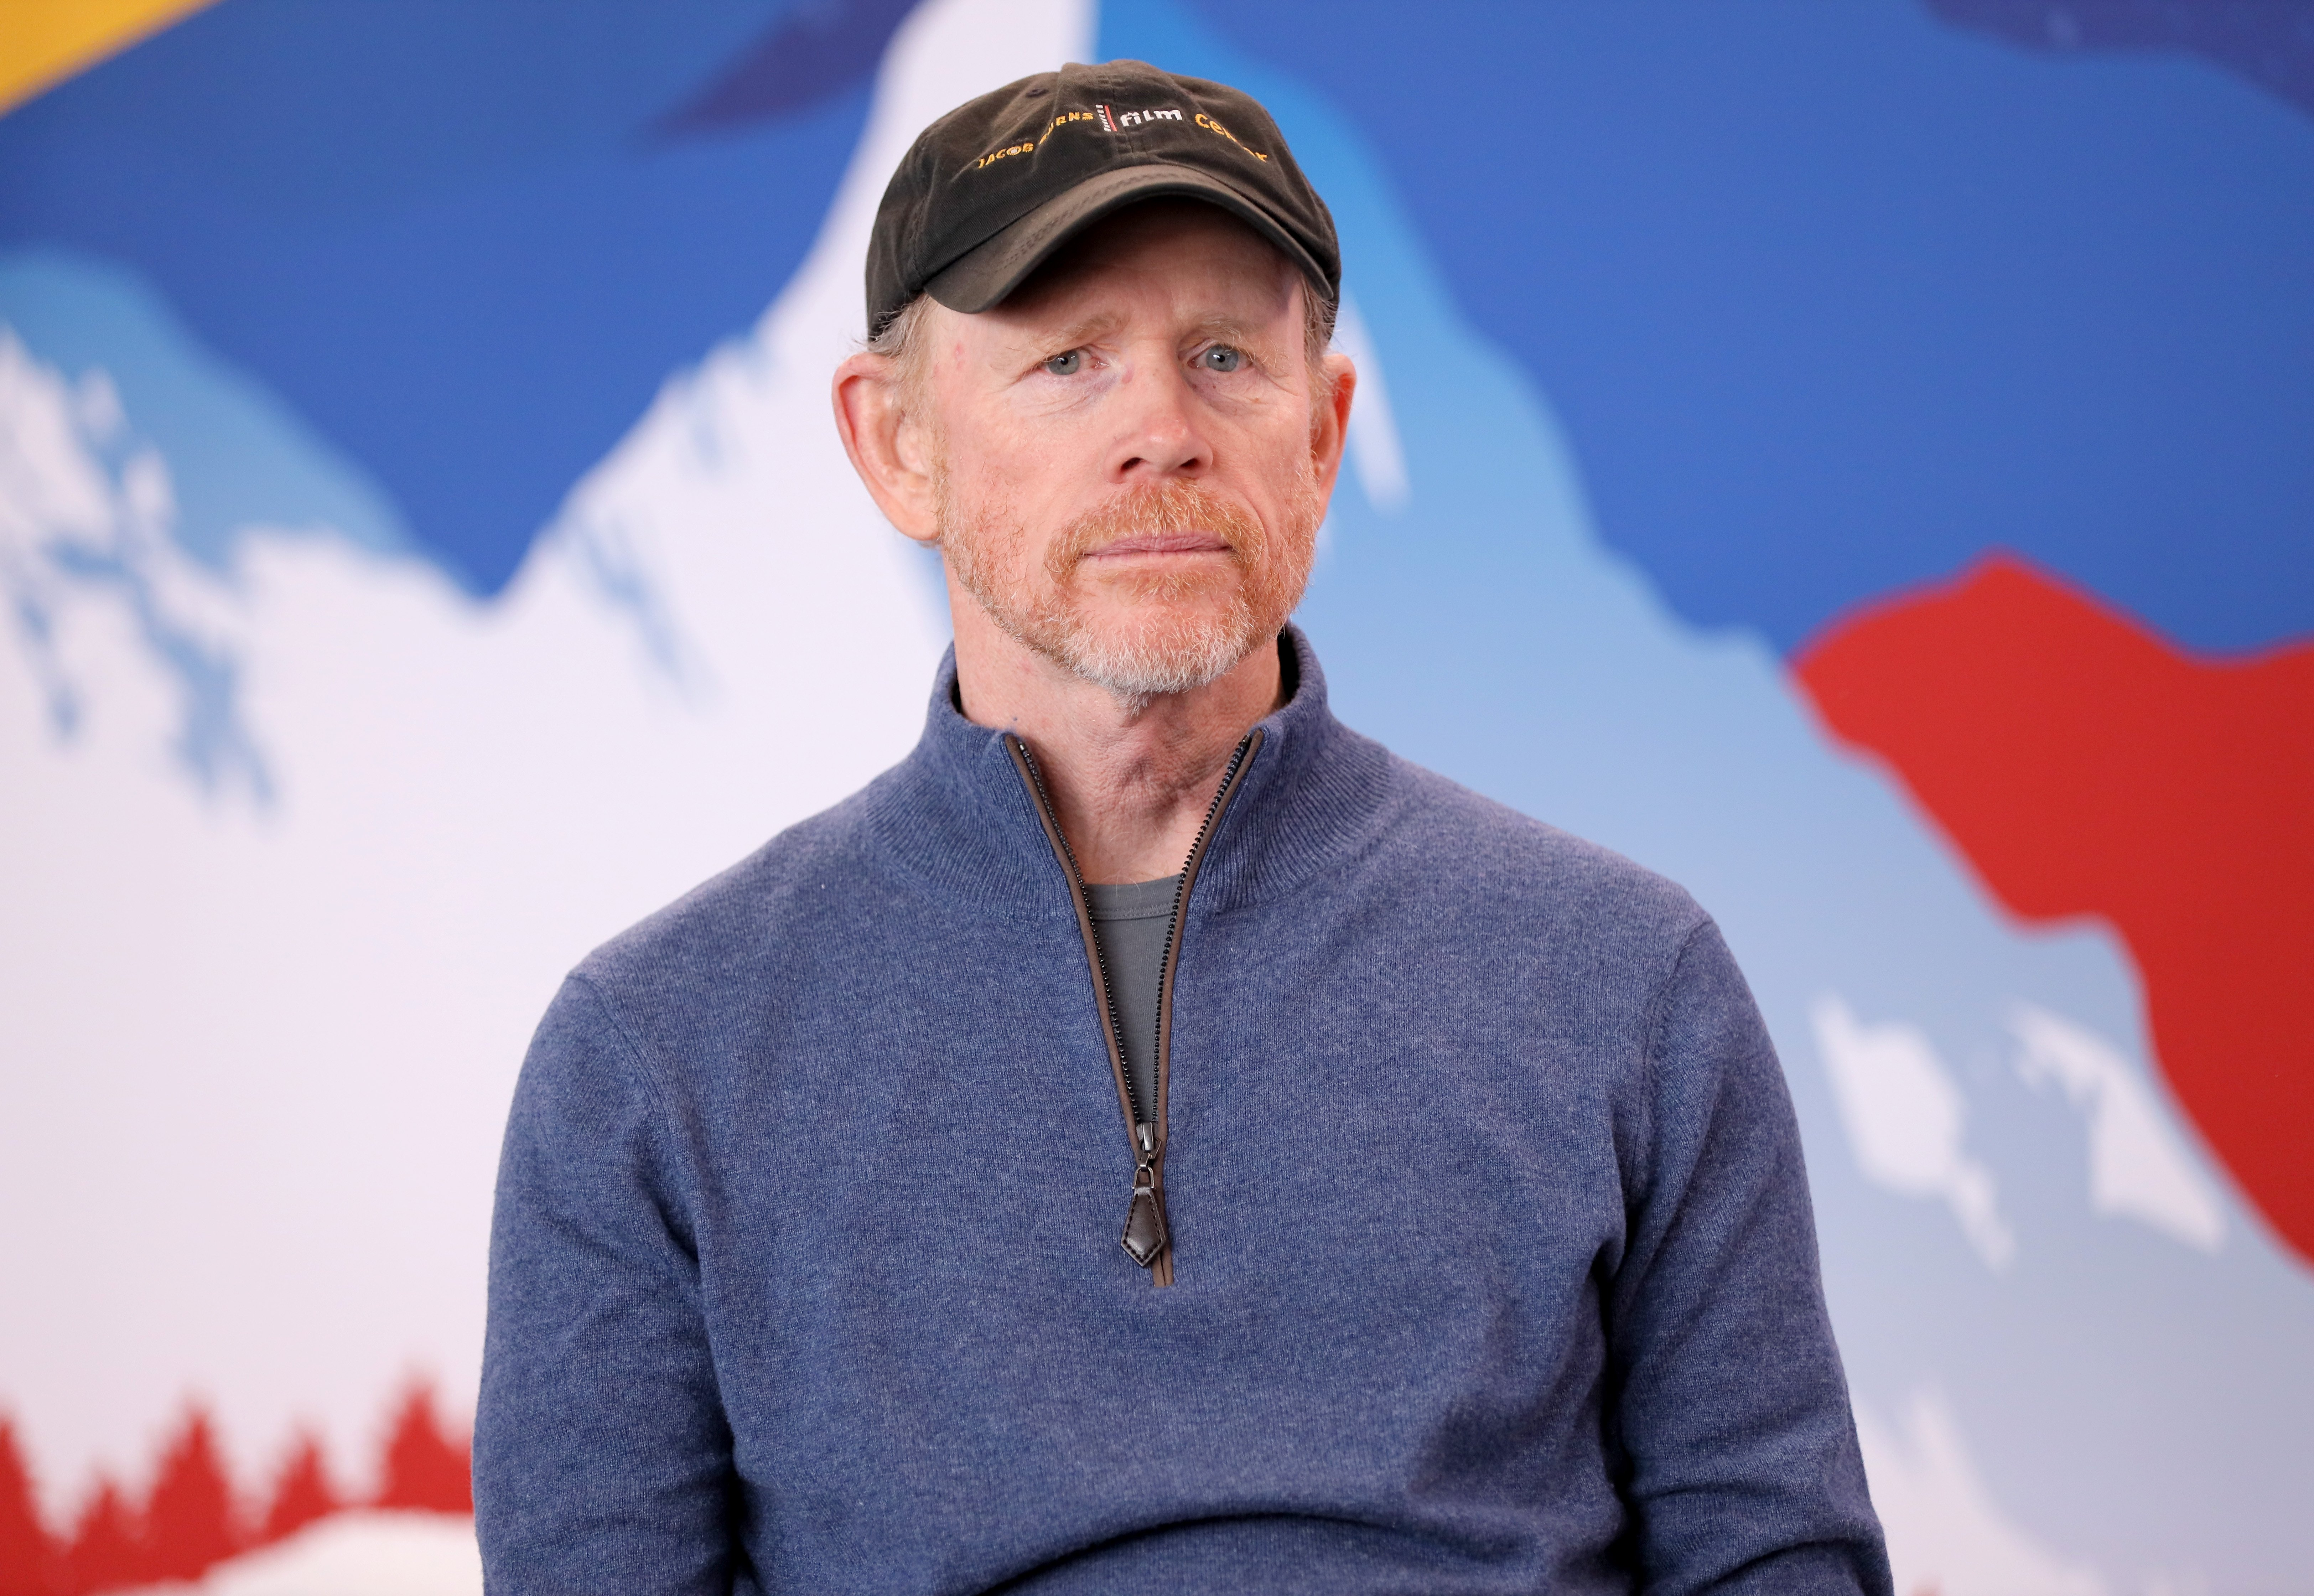 Ron Howard attends the IMDb Studio at Acura Festival Village on January 24, 2020 in Park City, Utah   Photo: Getty Images